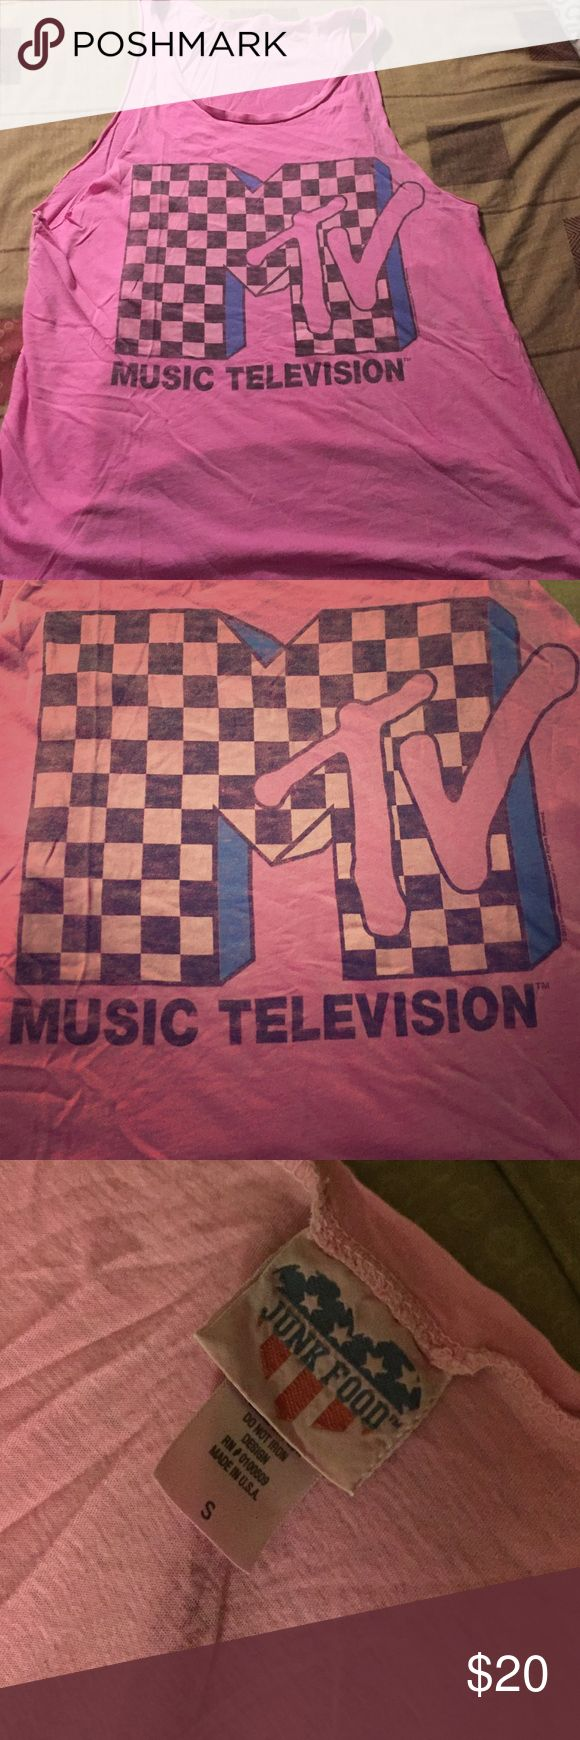 MTV Pink Muscle Tee Perfect to be worn over your strapless bra, bikini top, or sports bra. Either way, you're gonna be ready to beat the heat in a fashion-hip-cool pink muscle top with a faded-look (yes, it's meant to look faded) checkered MTV MUSIC TELEVISION logo. Size: Small Brand: JUNK FOOD.® Junk Food Clothing Tops Muscle Tees